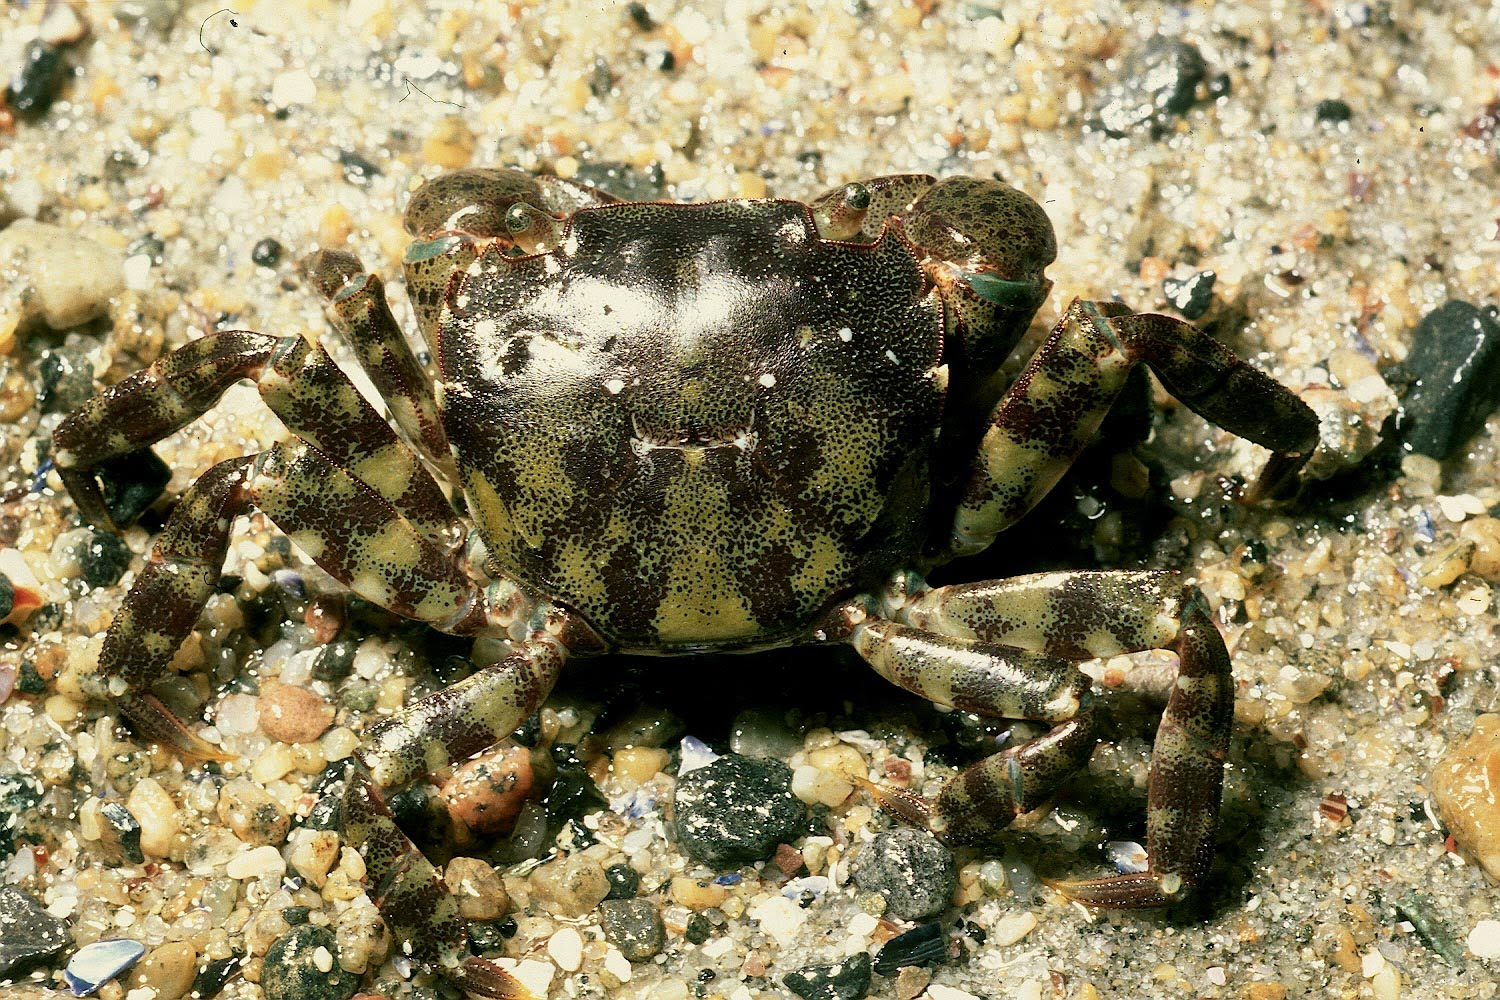 The asian shore crab